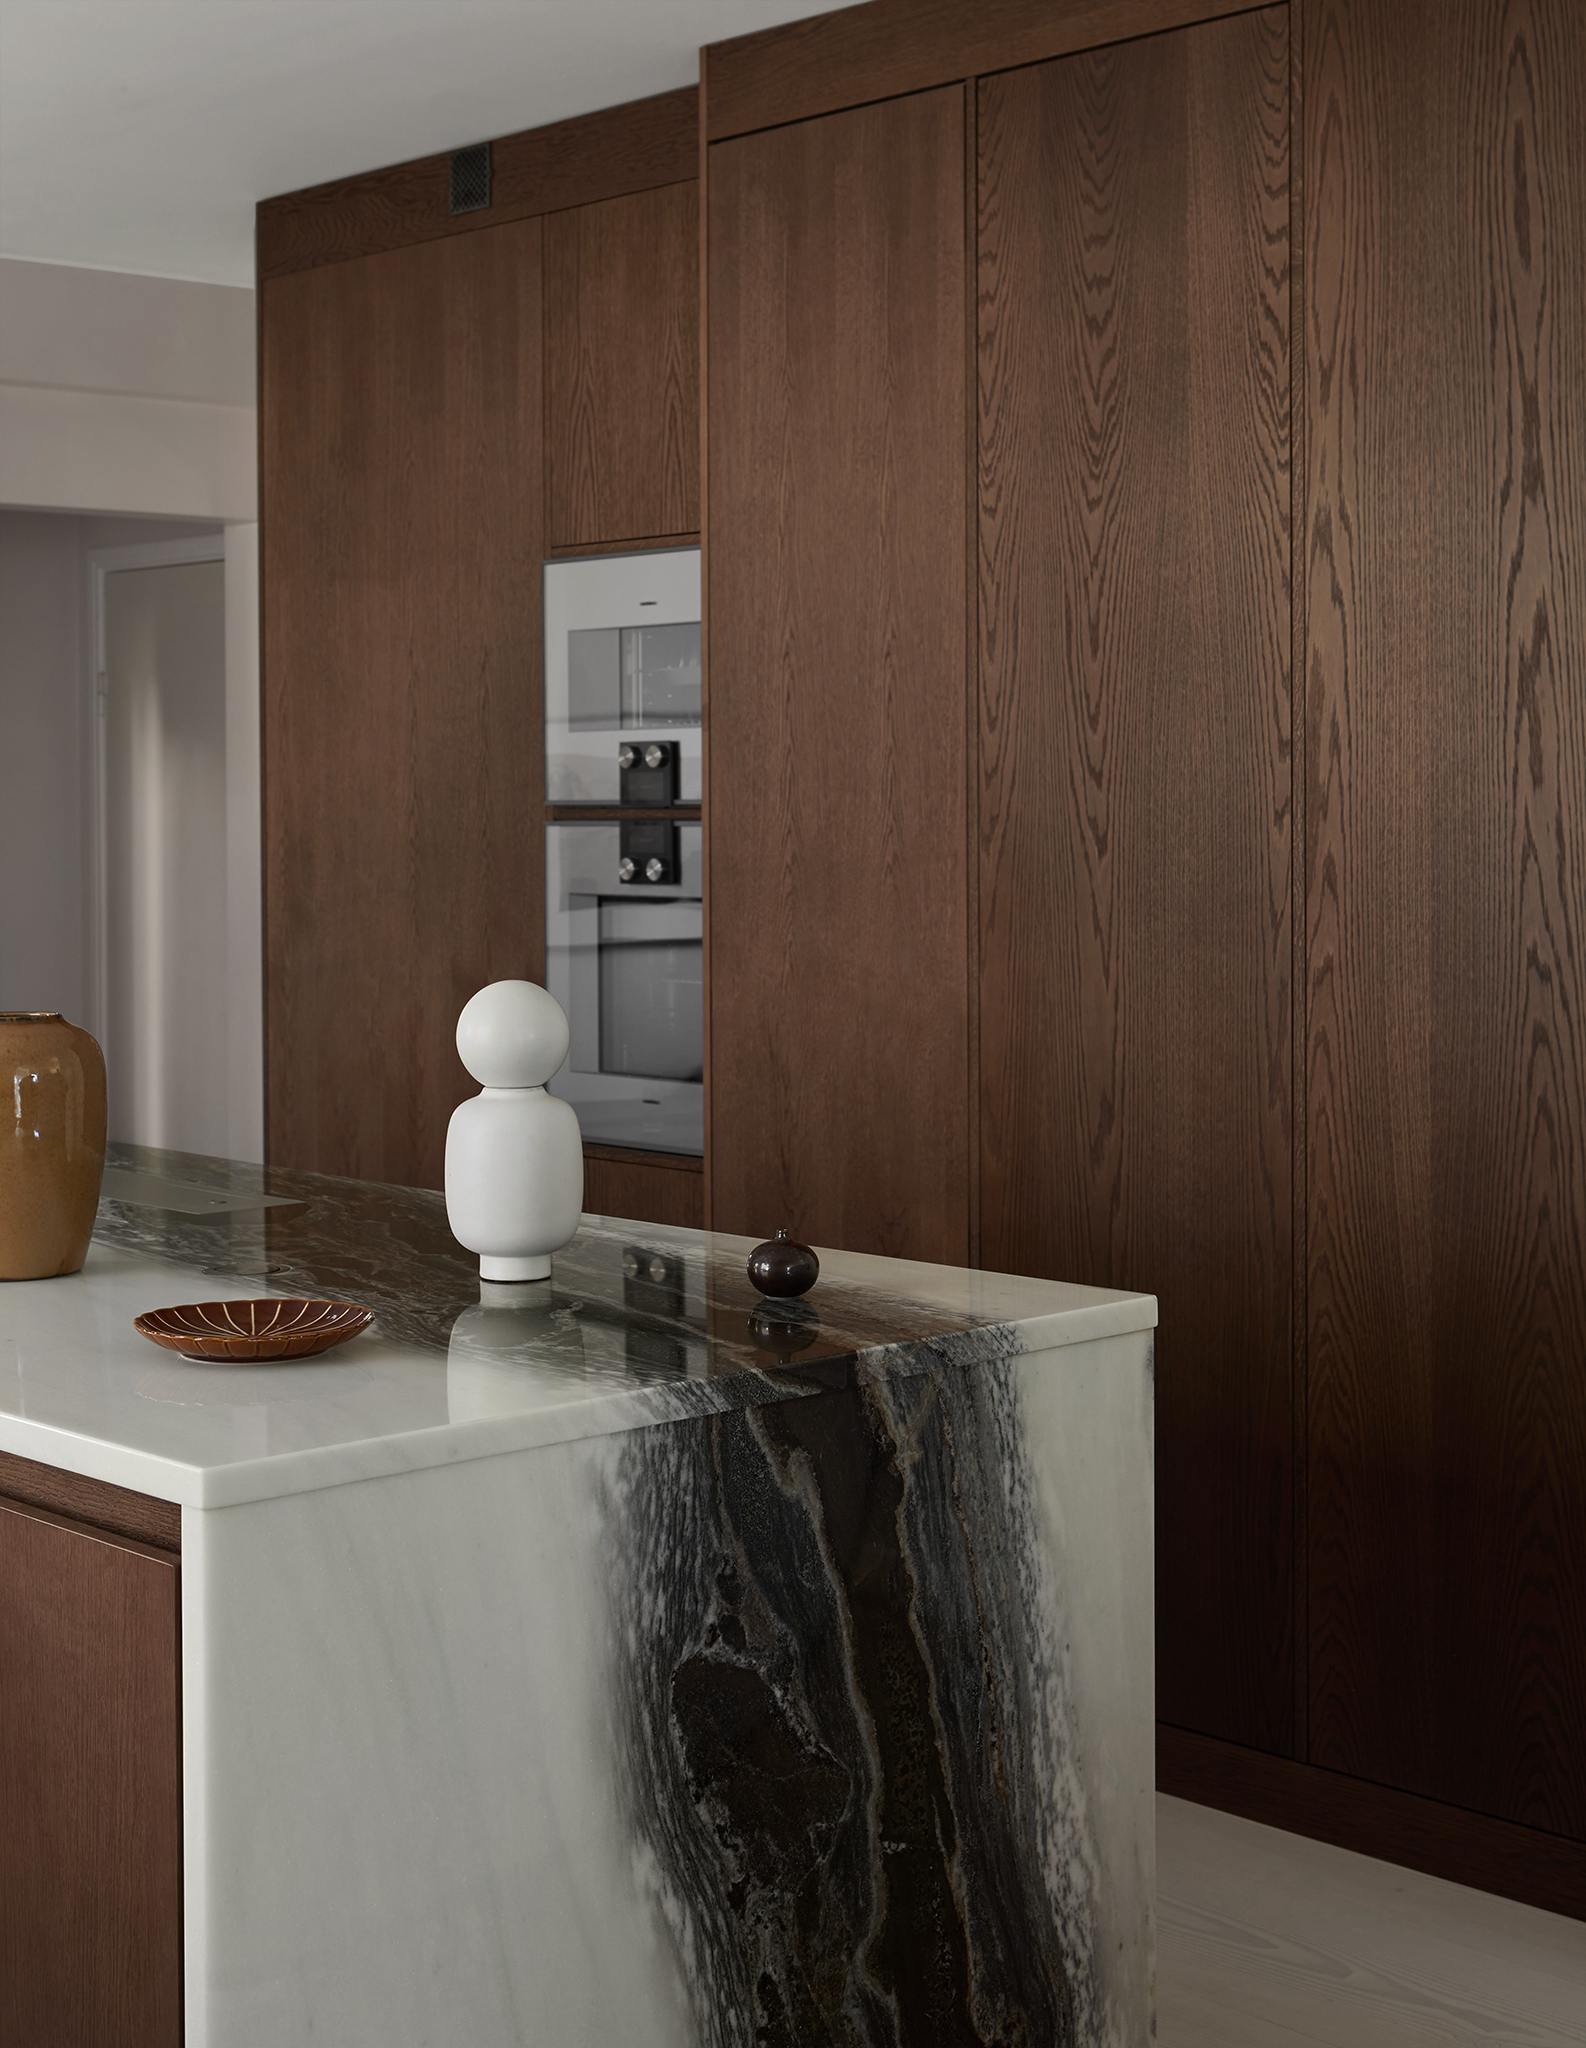 in frame wooden kitchen with marble countertop